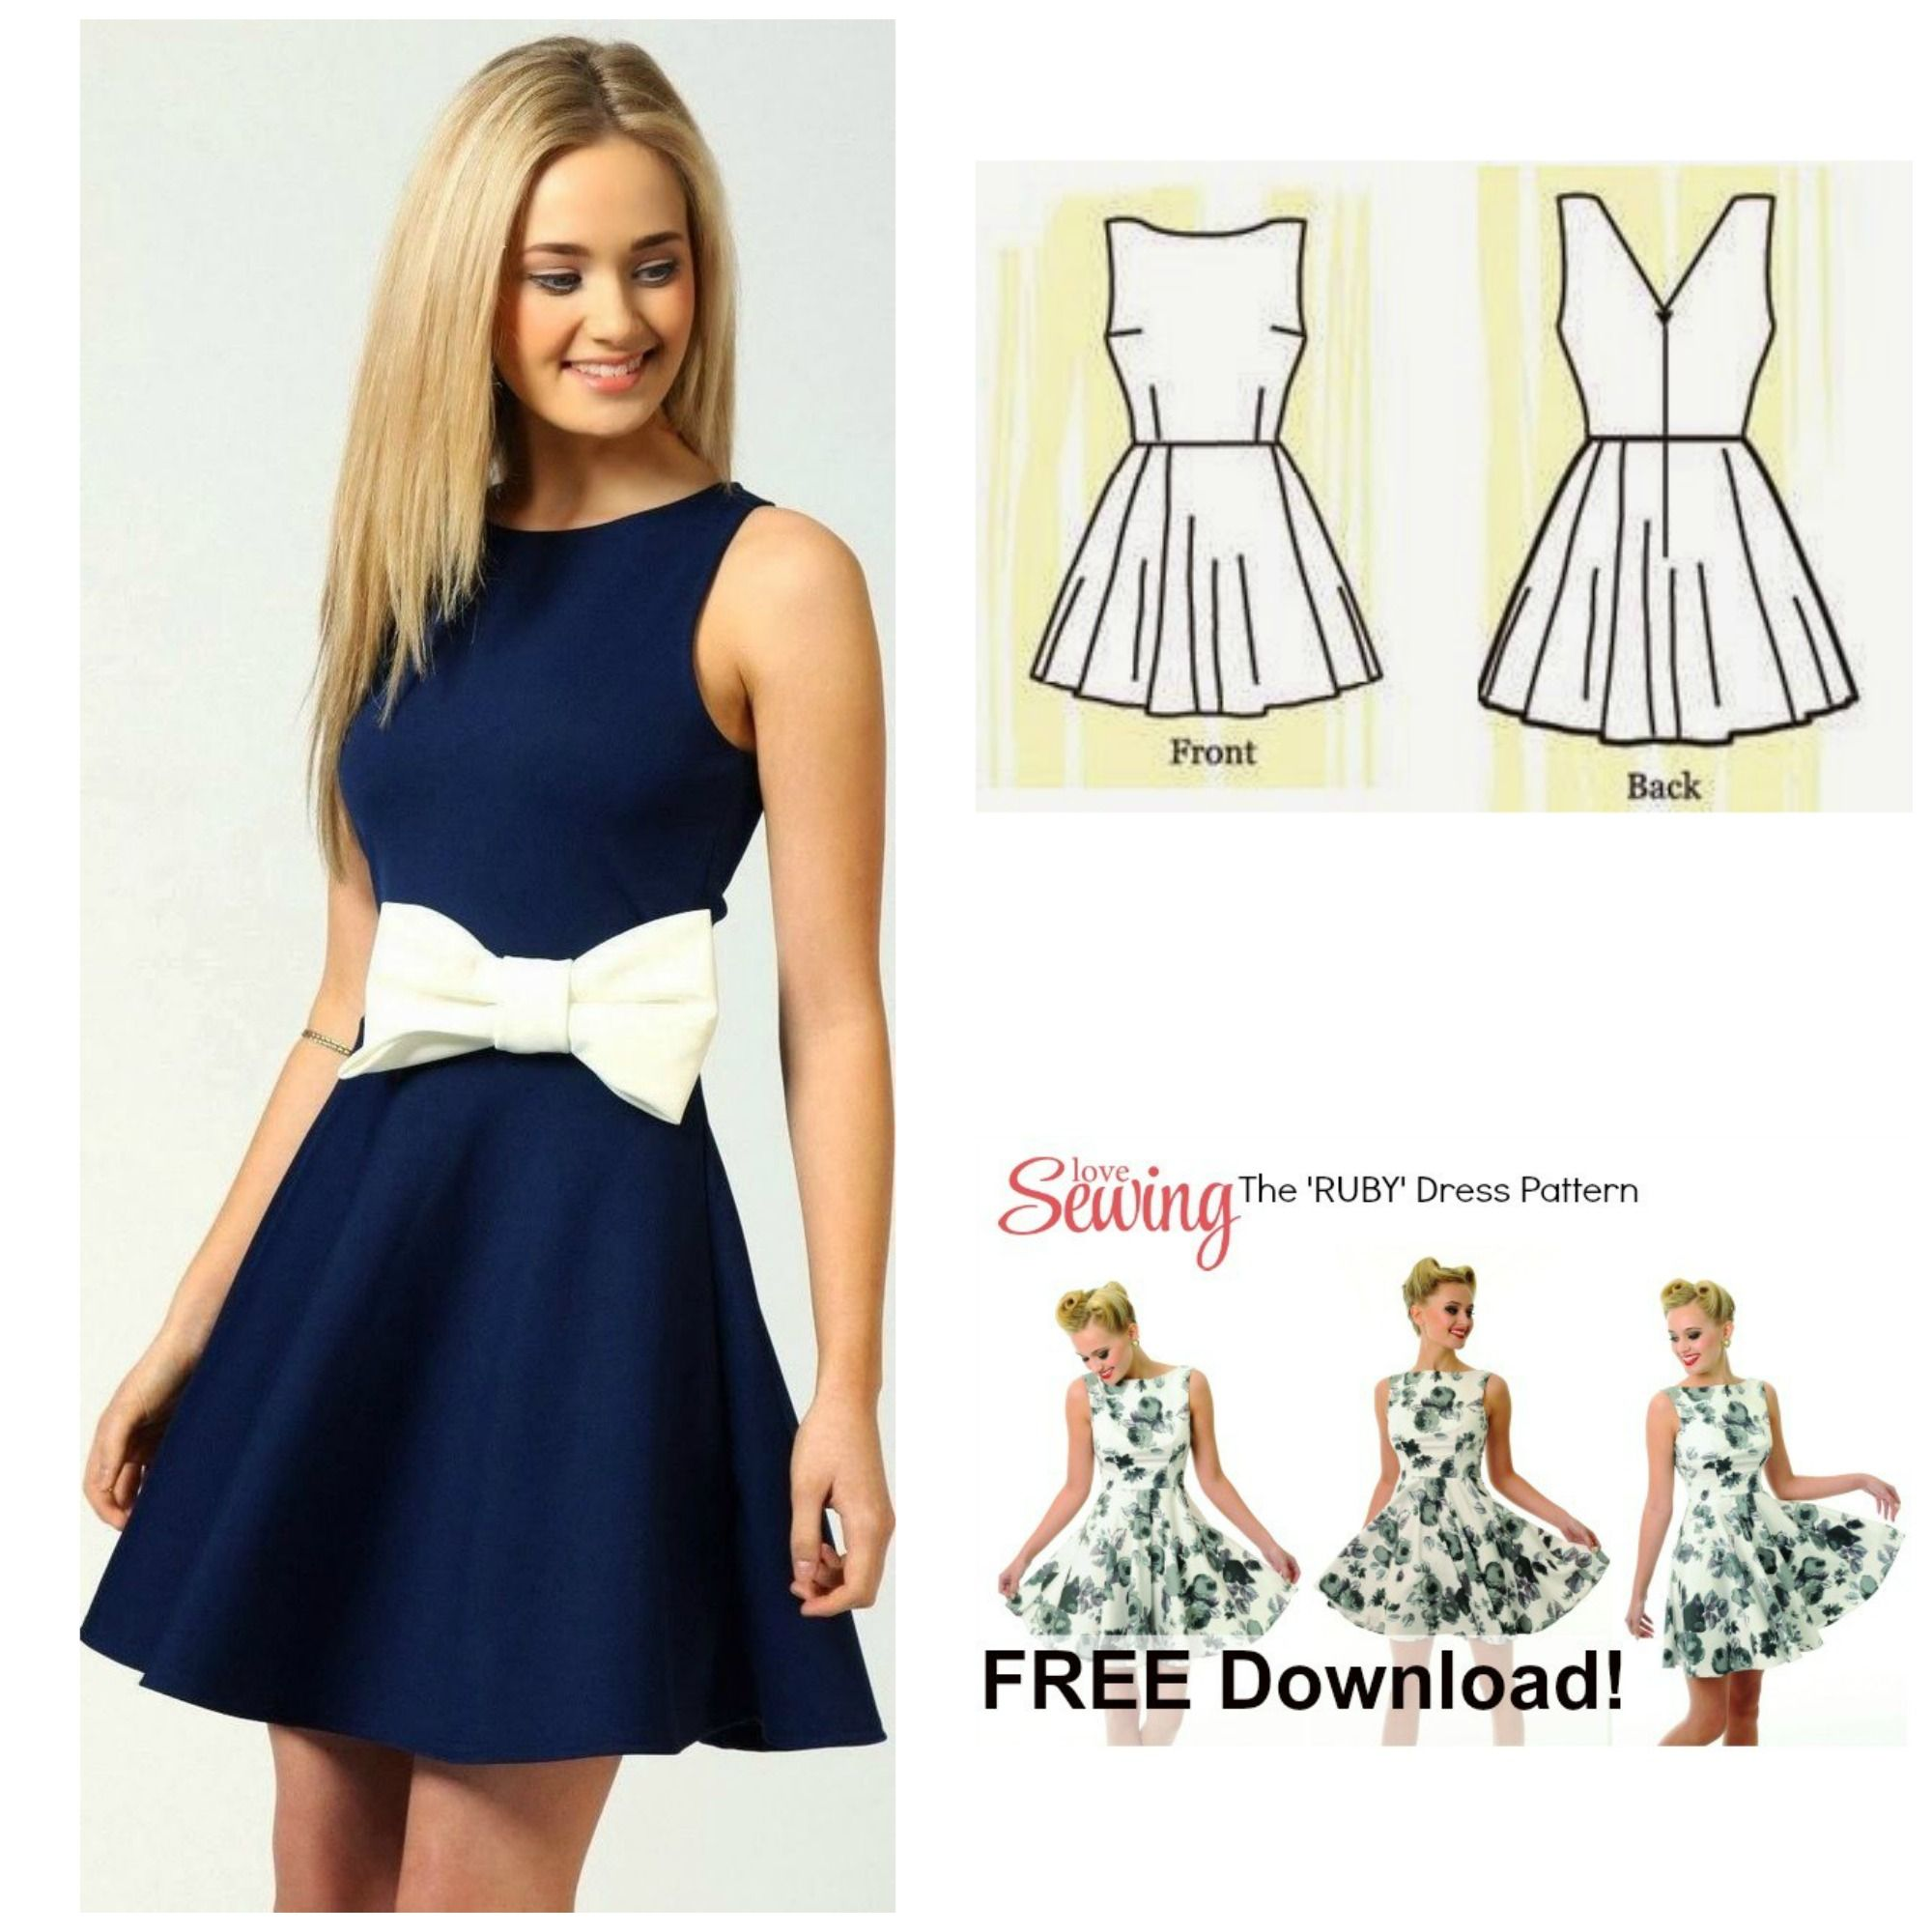 Free Dress Pattern: The Ruby Dress | Sy | Pinterest | Simple ...